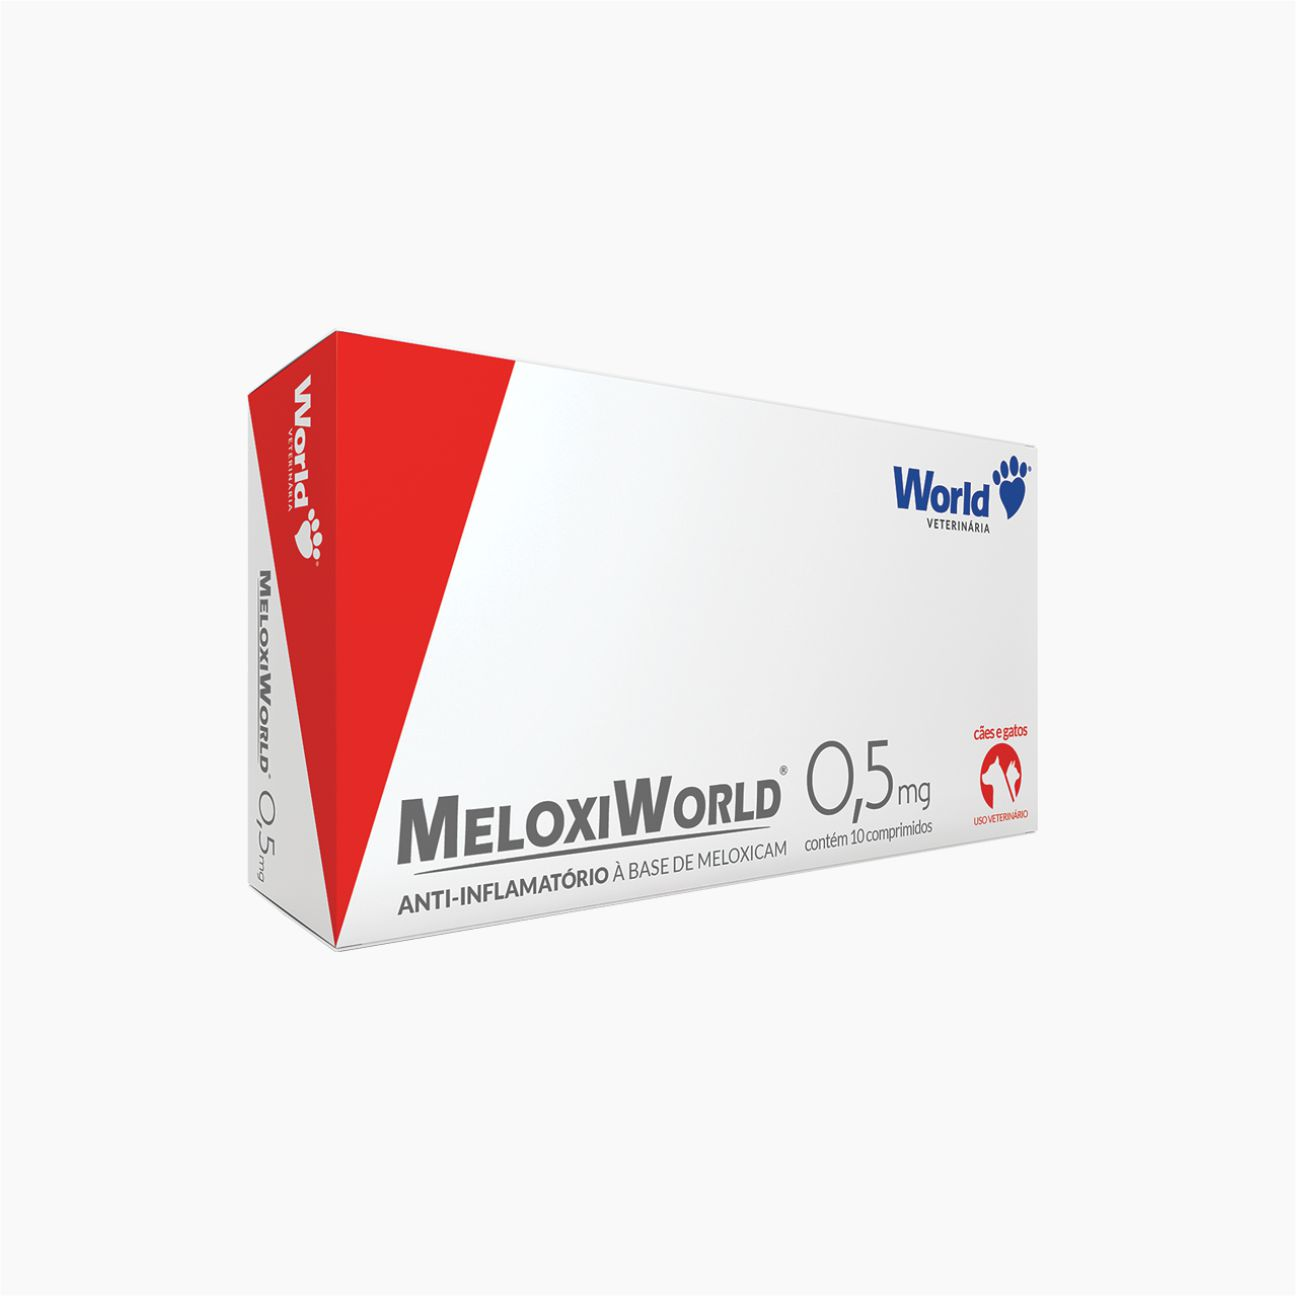 MeloxiWorld 0,5mg